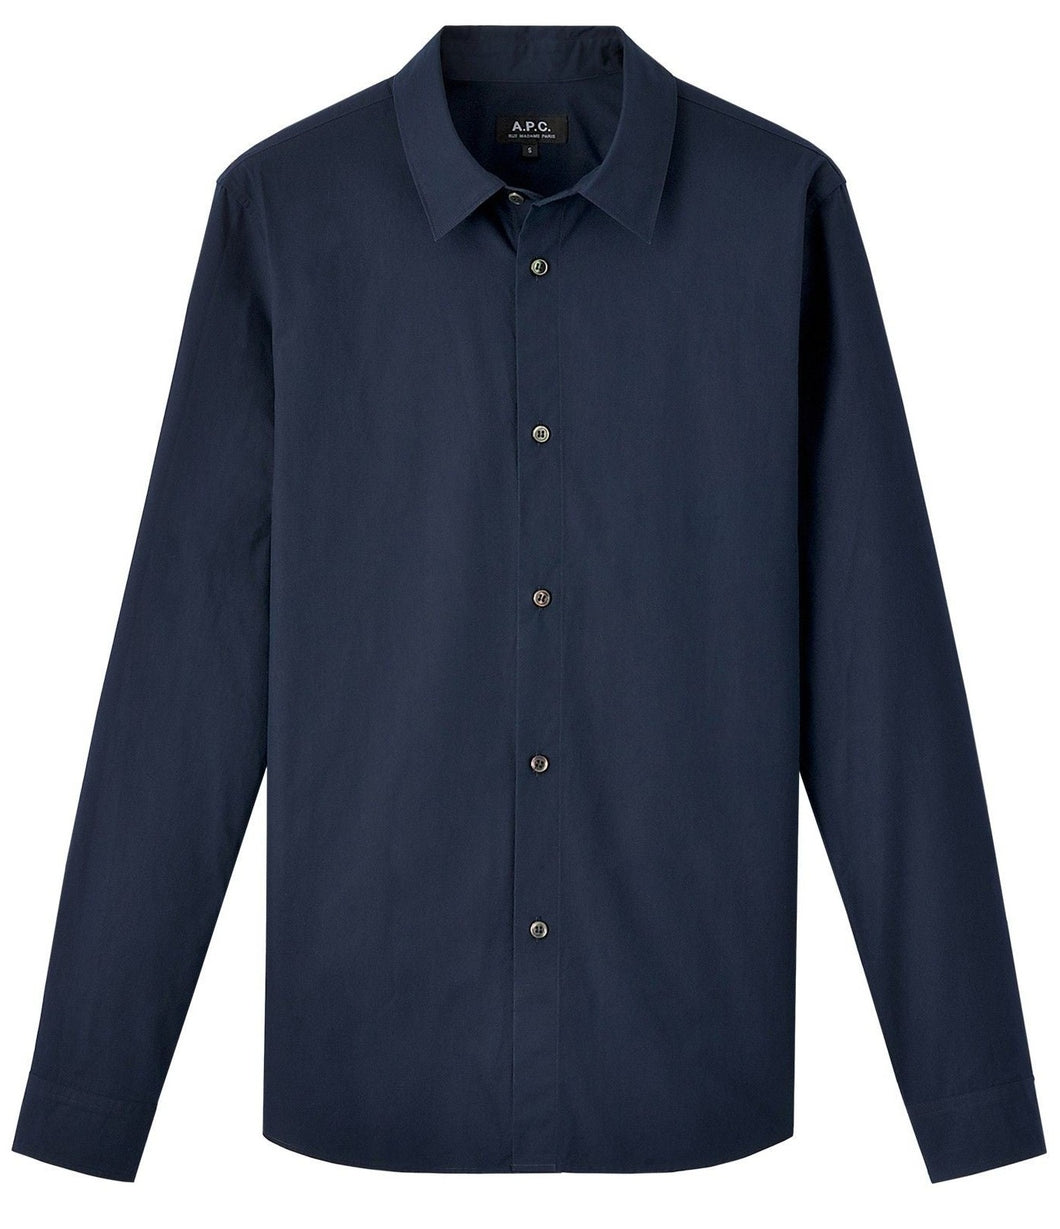 CASUSAL SHIRT NAVY